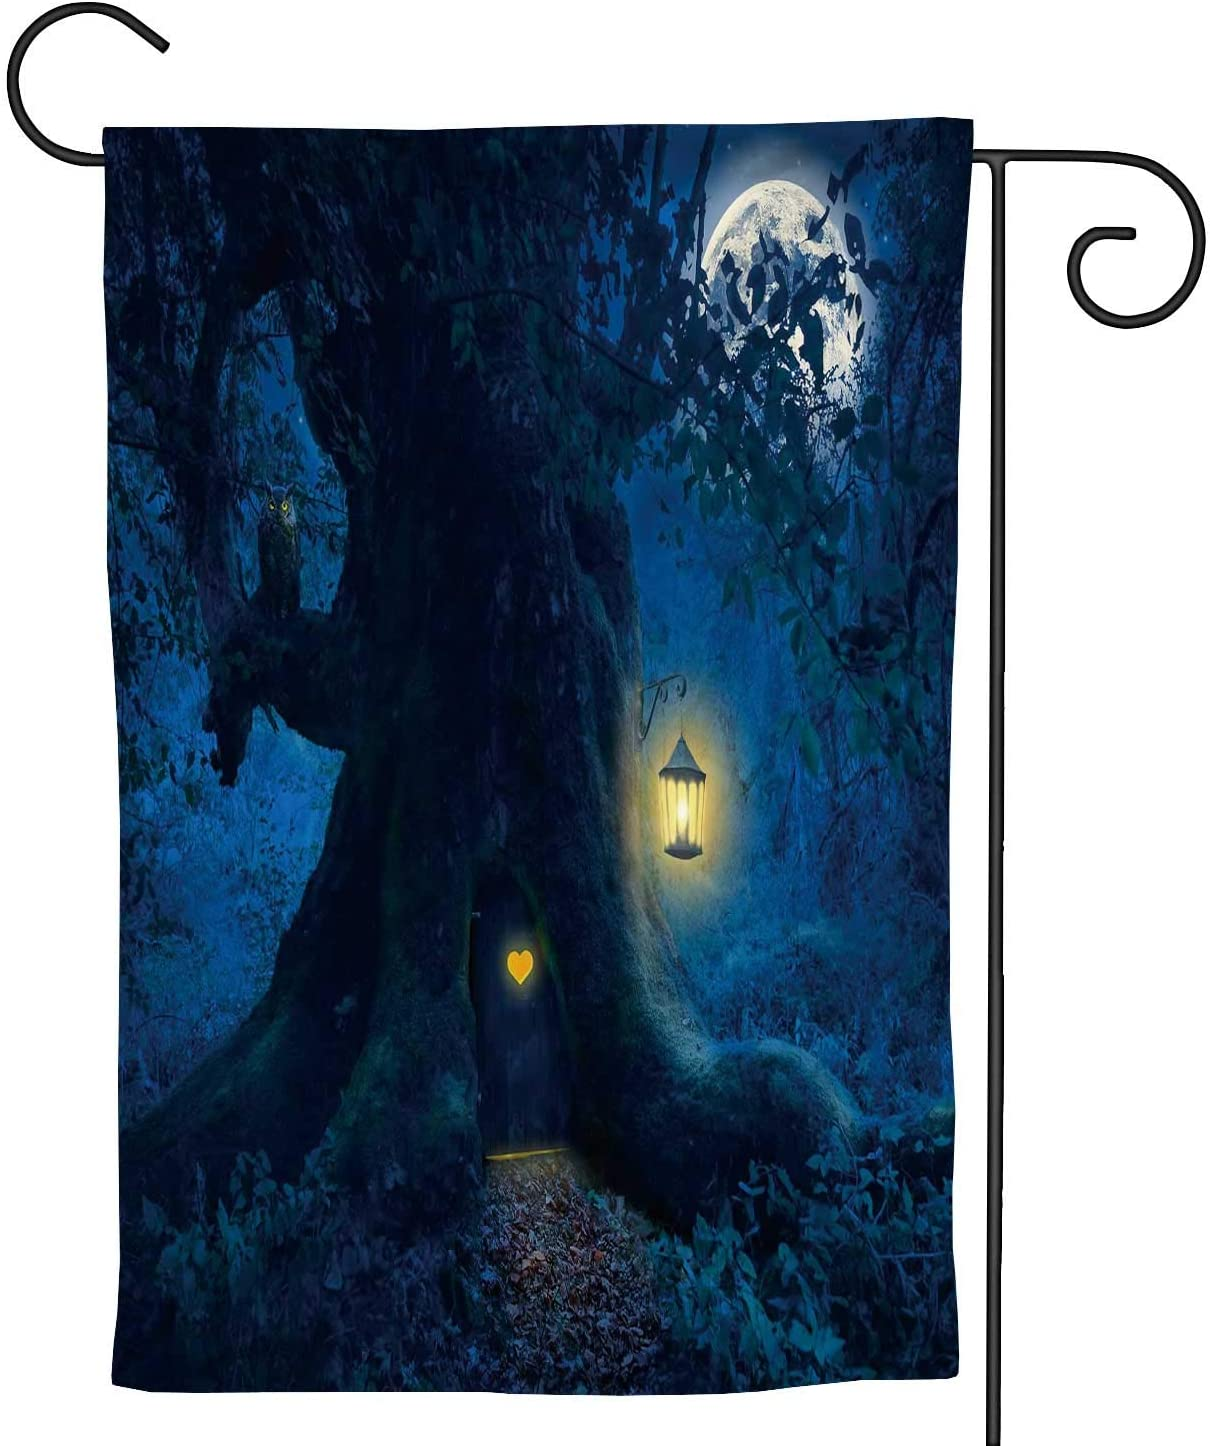 C COABALLA Magical Night with a Little Home in The Trunk of an Ancient Tree Enchanted Forest,Welcome Garden Flag Double Sided Rustic Farmhouse Burlap Yard Outdoor Decoration 12.5''x18''